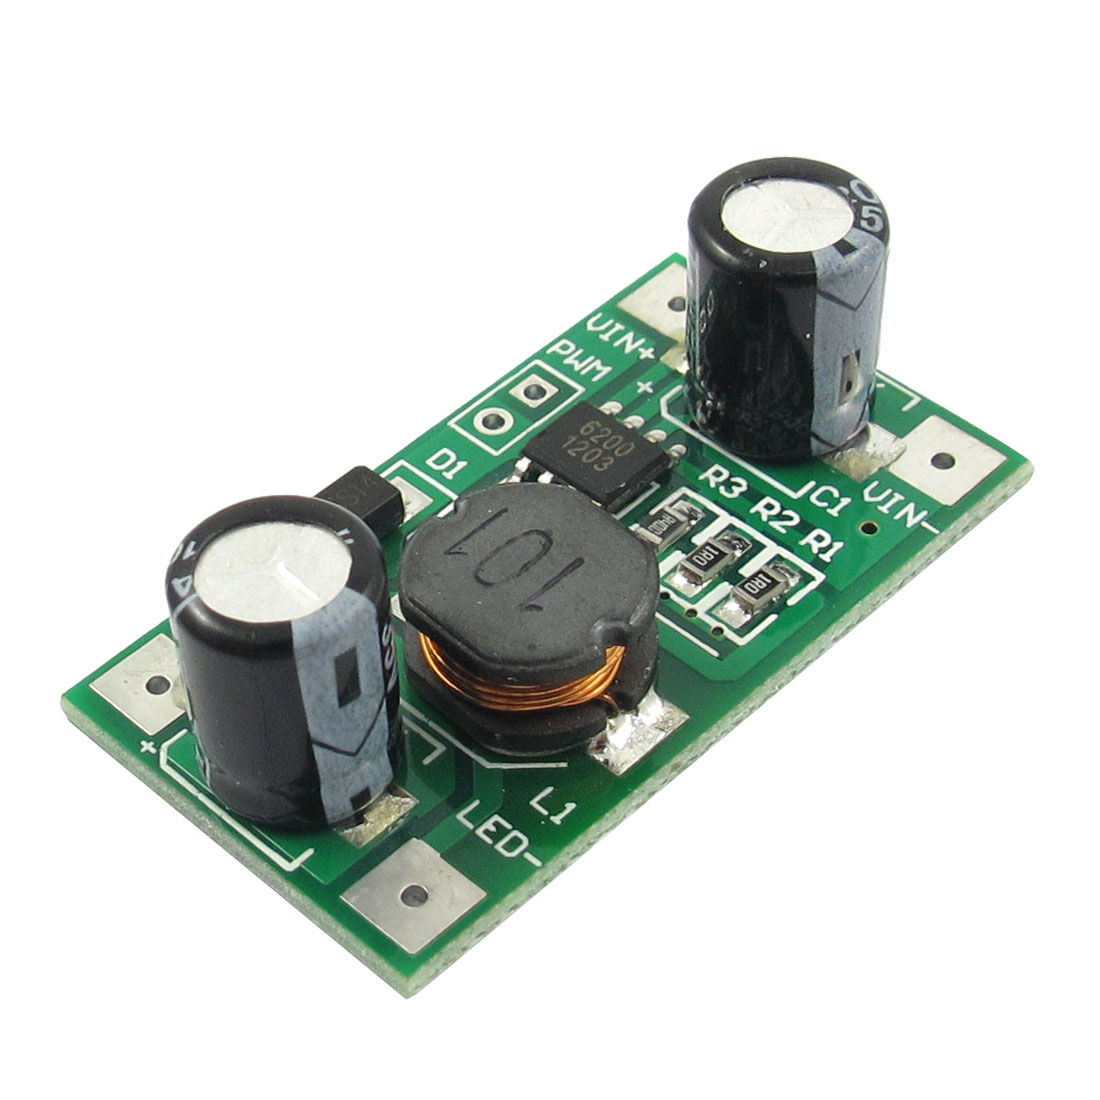 DC-DC Power Supply LED Driver Constant Current Module 700mA 3W